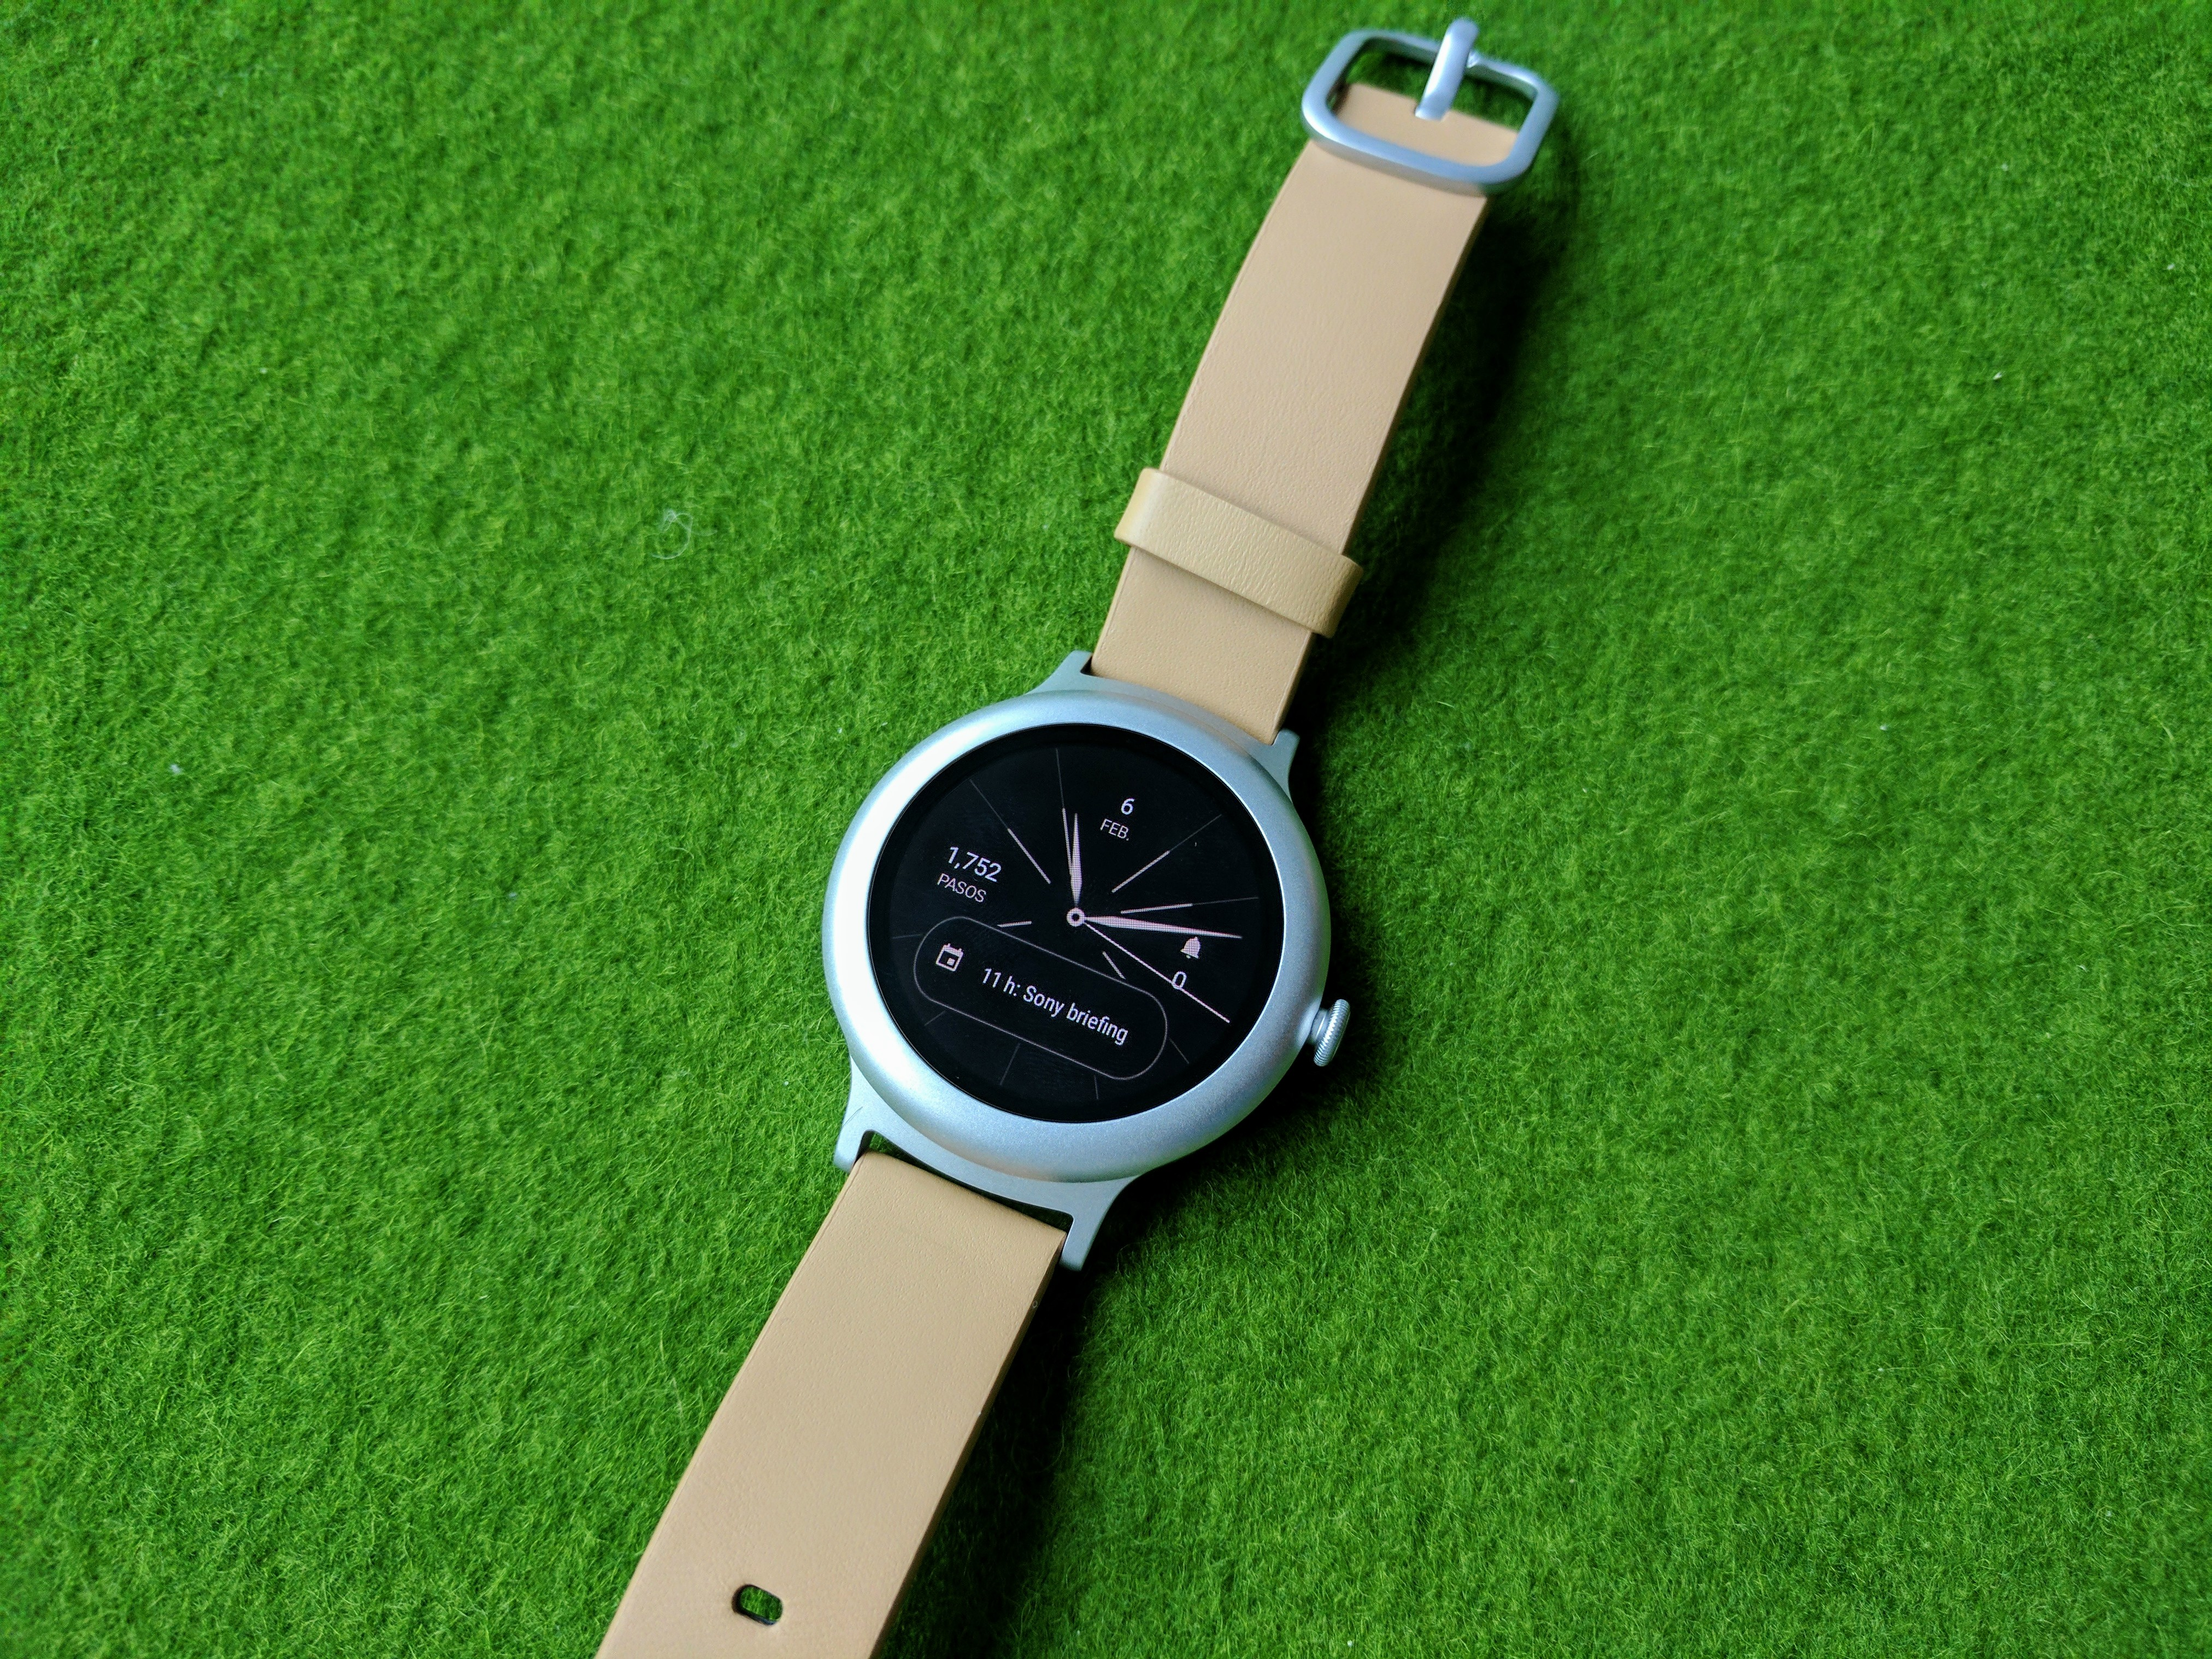 Android-wear-2-lg-watch-style